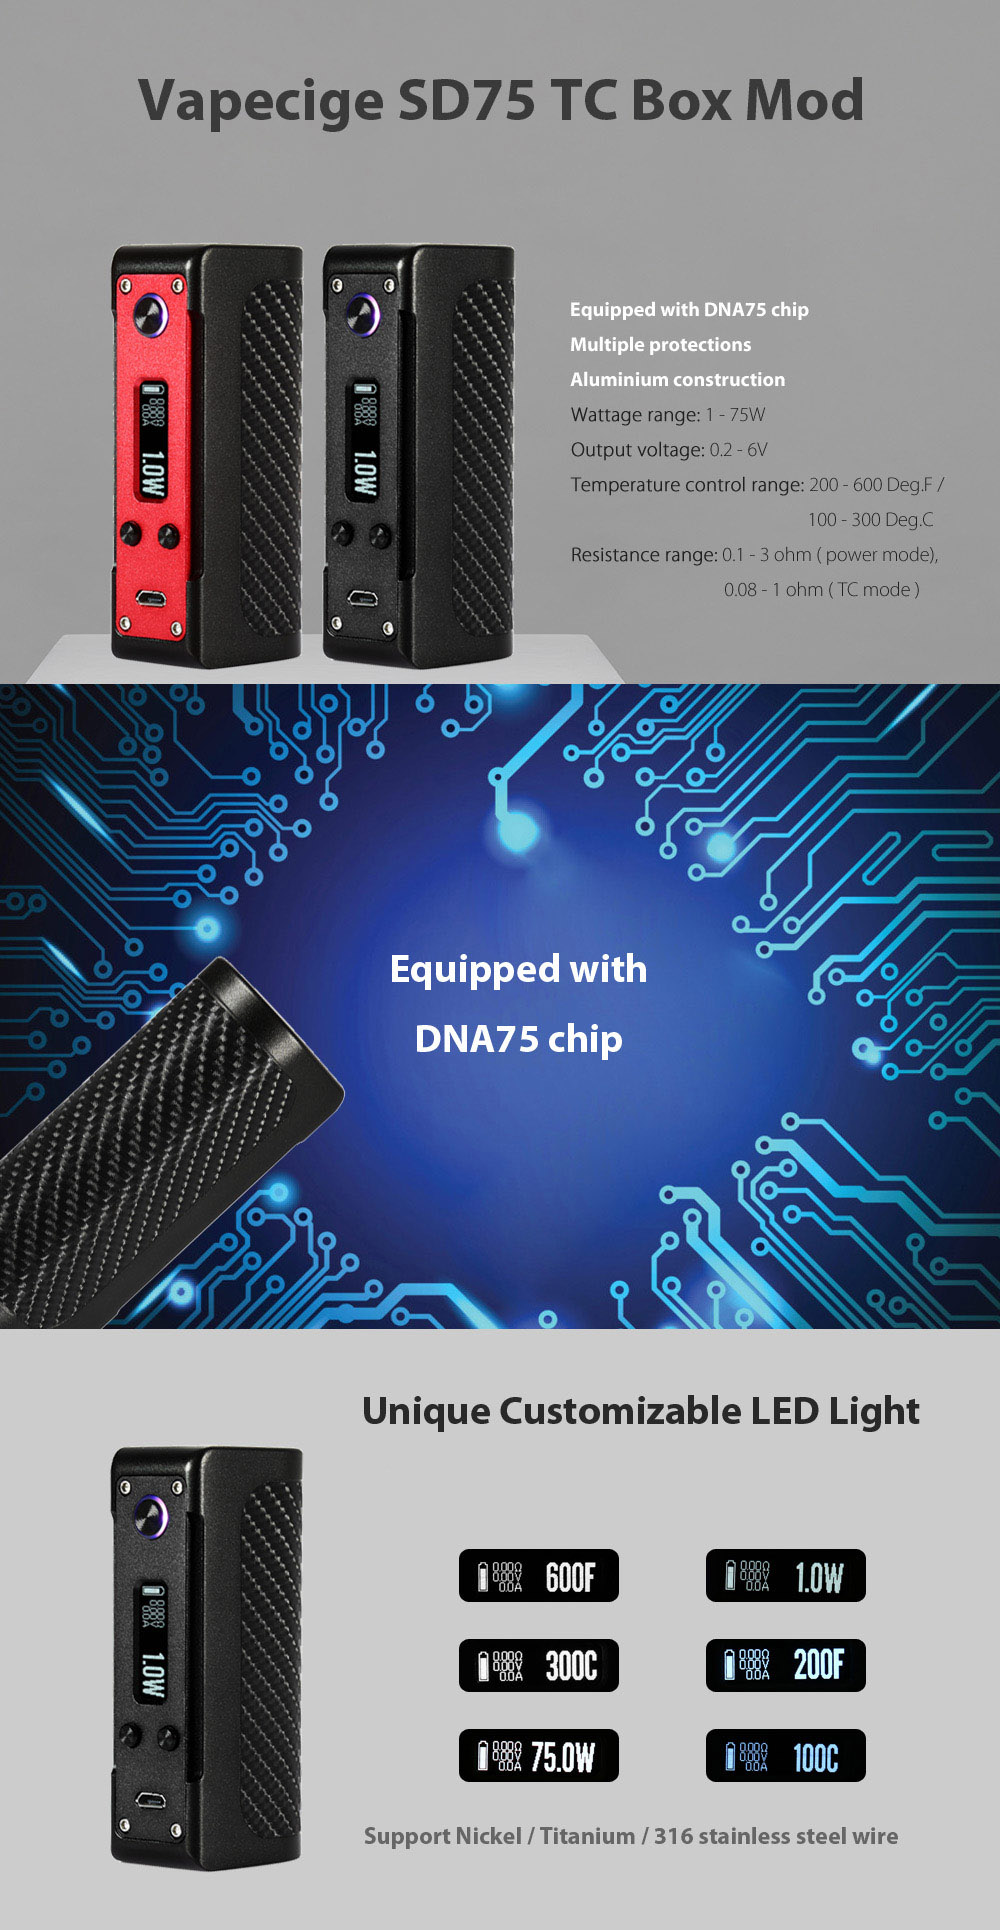 Original Vapecige SD75 TC Box Mod with DNA75 Chip / Customizable LED Light / 1 - 75W / 200 - 600F / 18650 / 26650 Battery Supportive for E Cigarette